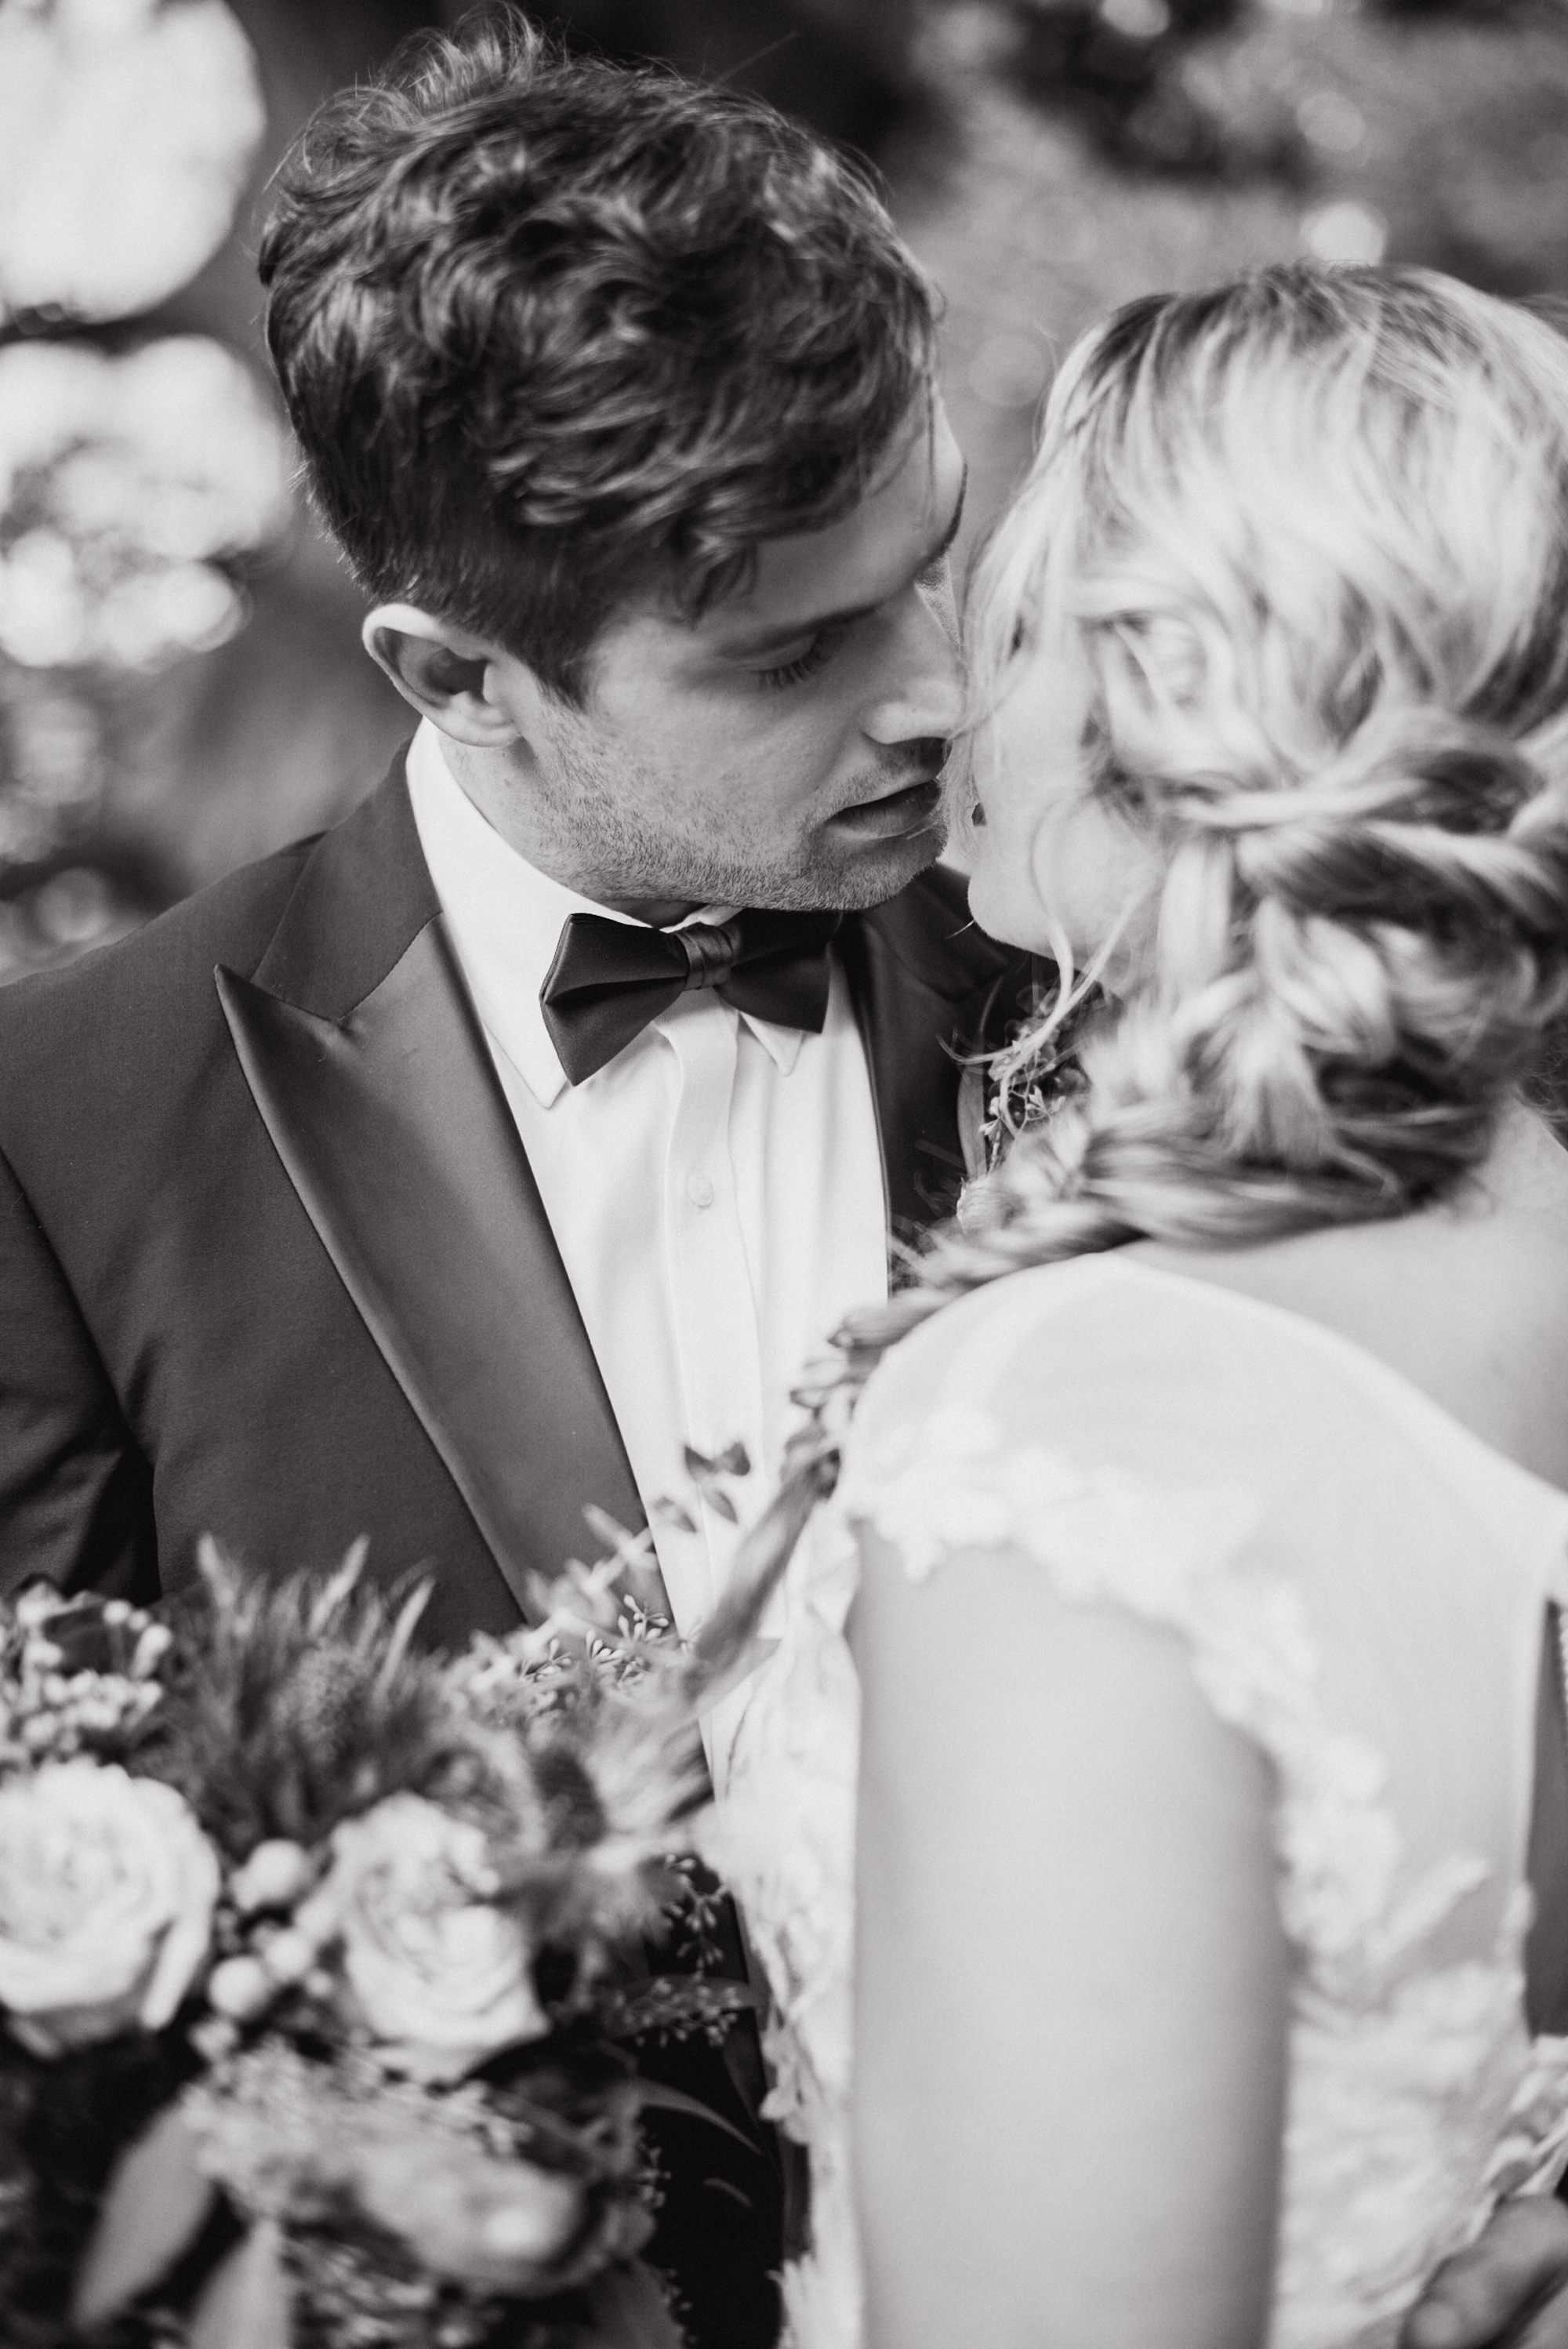 black and white wedding photography beautiful bride and groom wedding dress under $1000